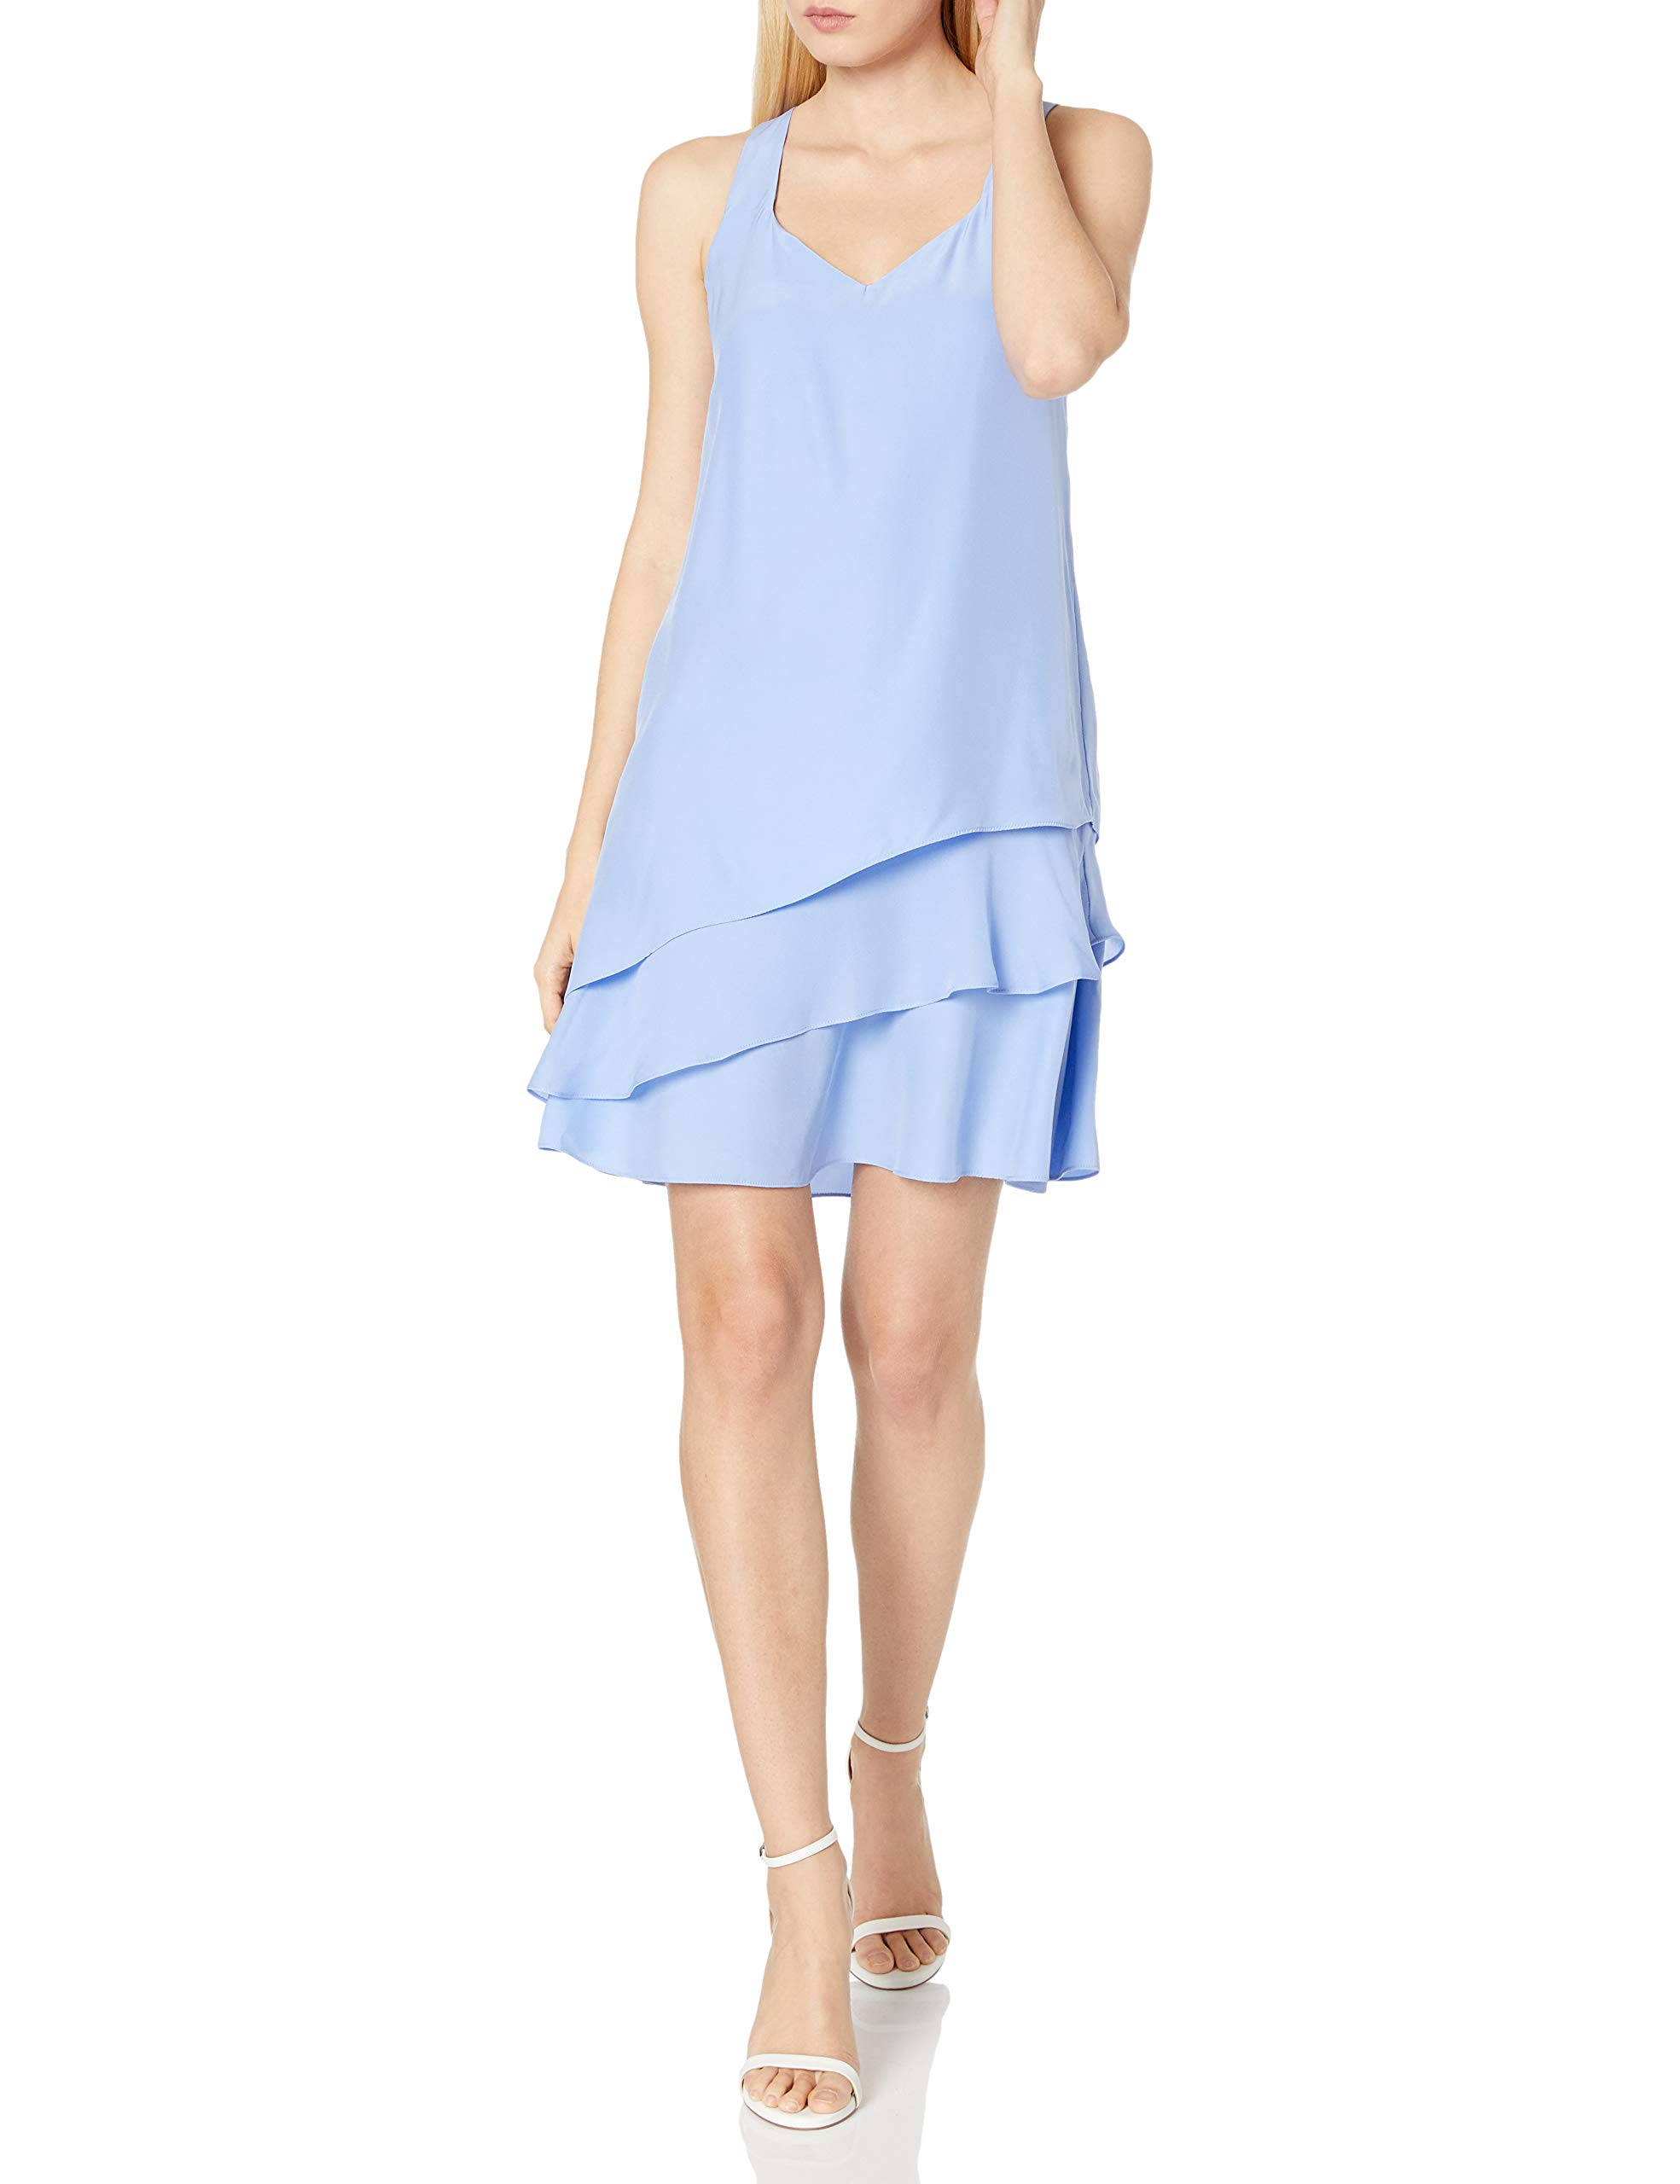 Available at Amazon: Parker Women's Eve Combo Dress